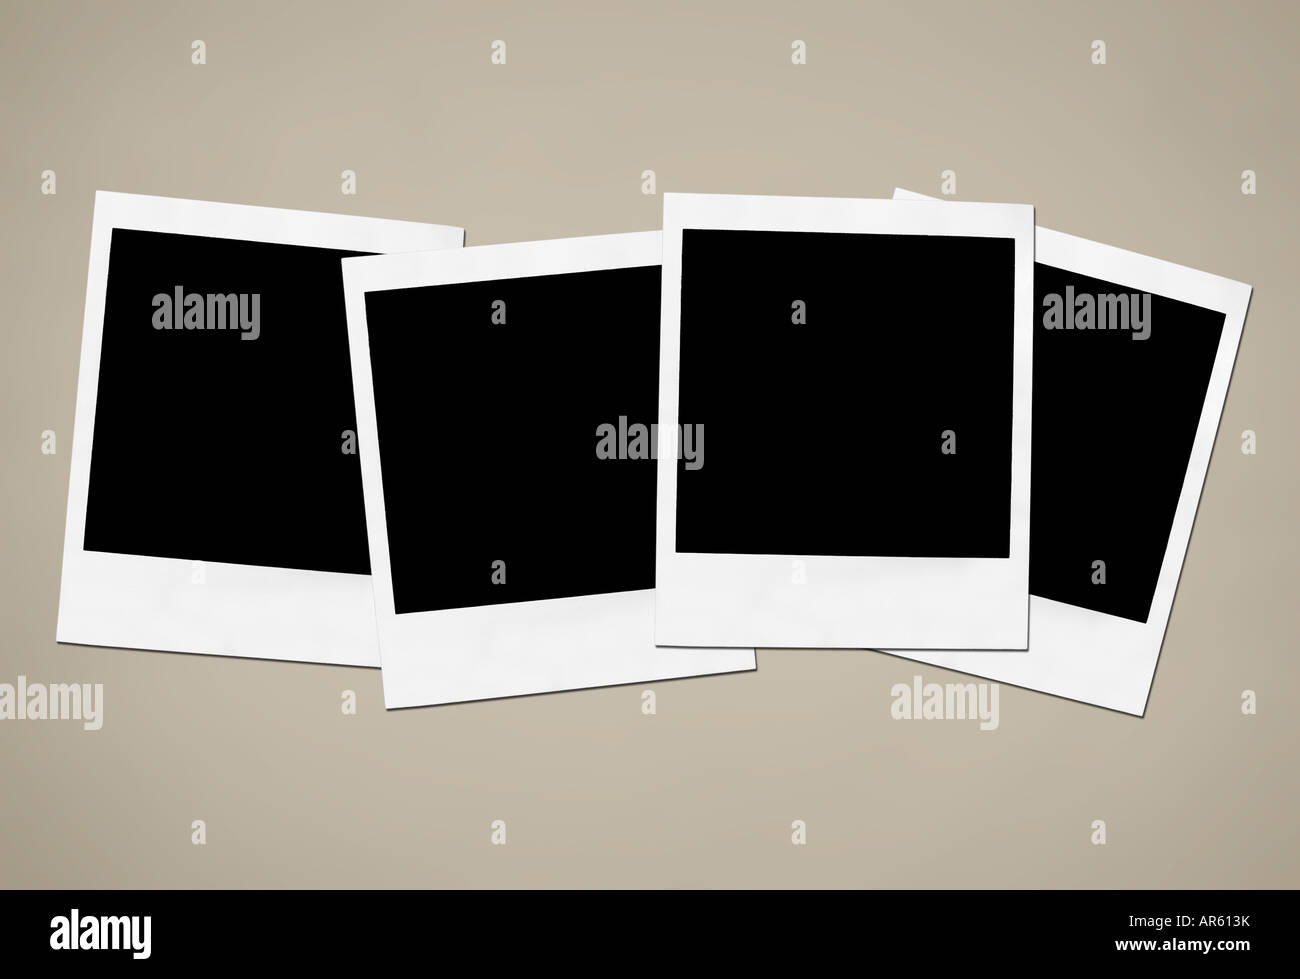 Collection of blank instant camera frames Stock Photo: 15950070 - Alamy